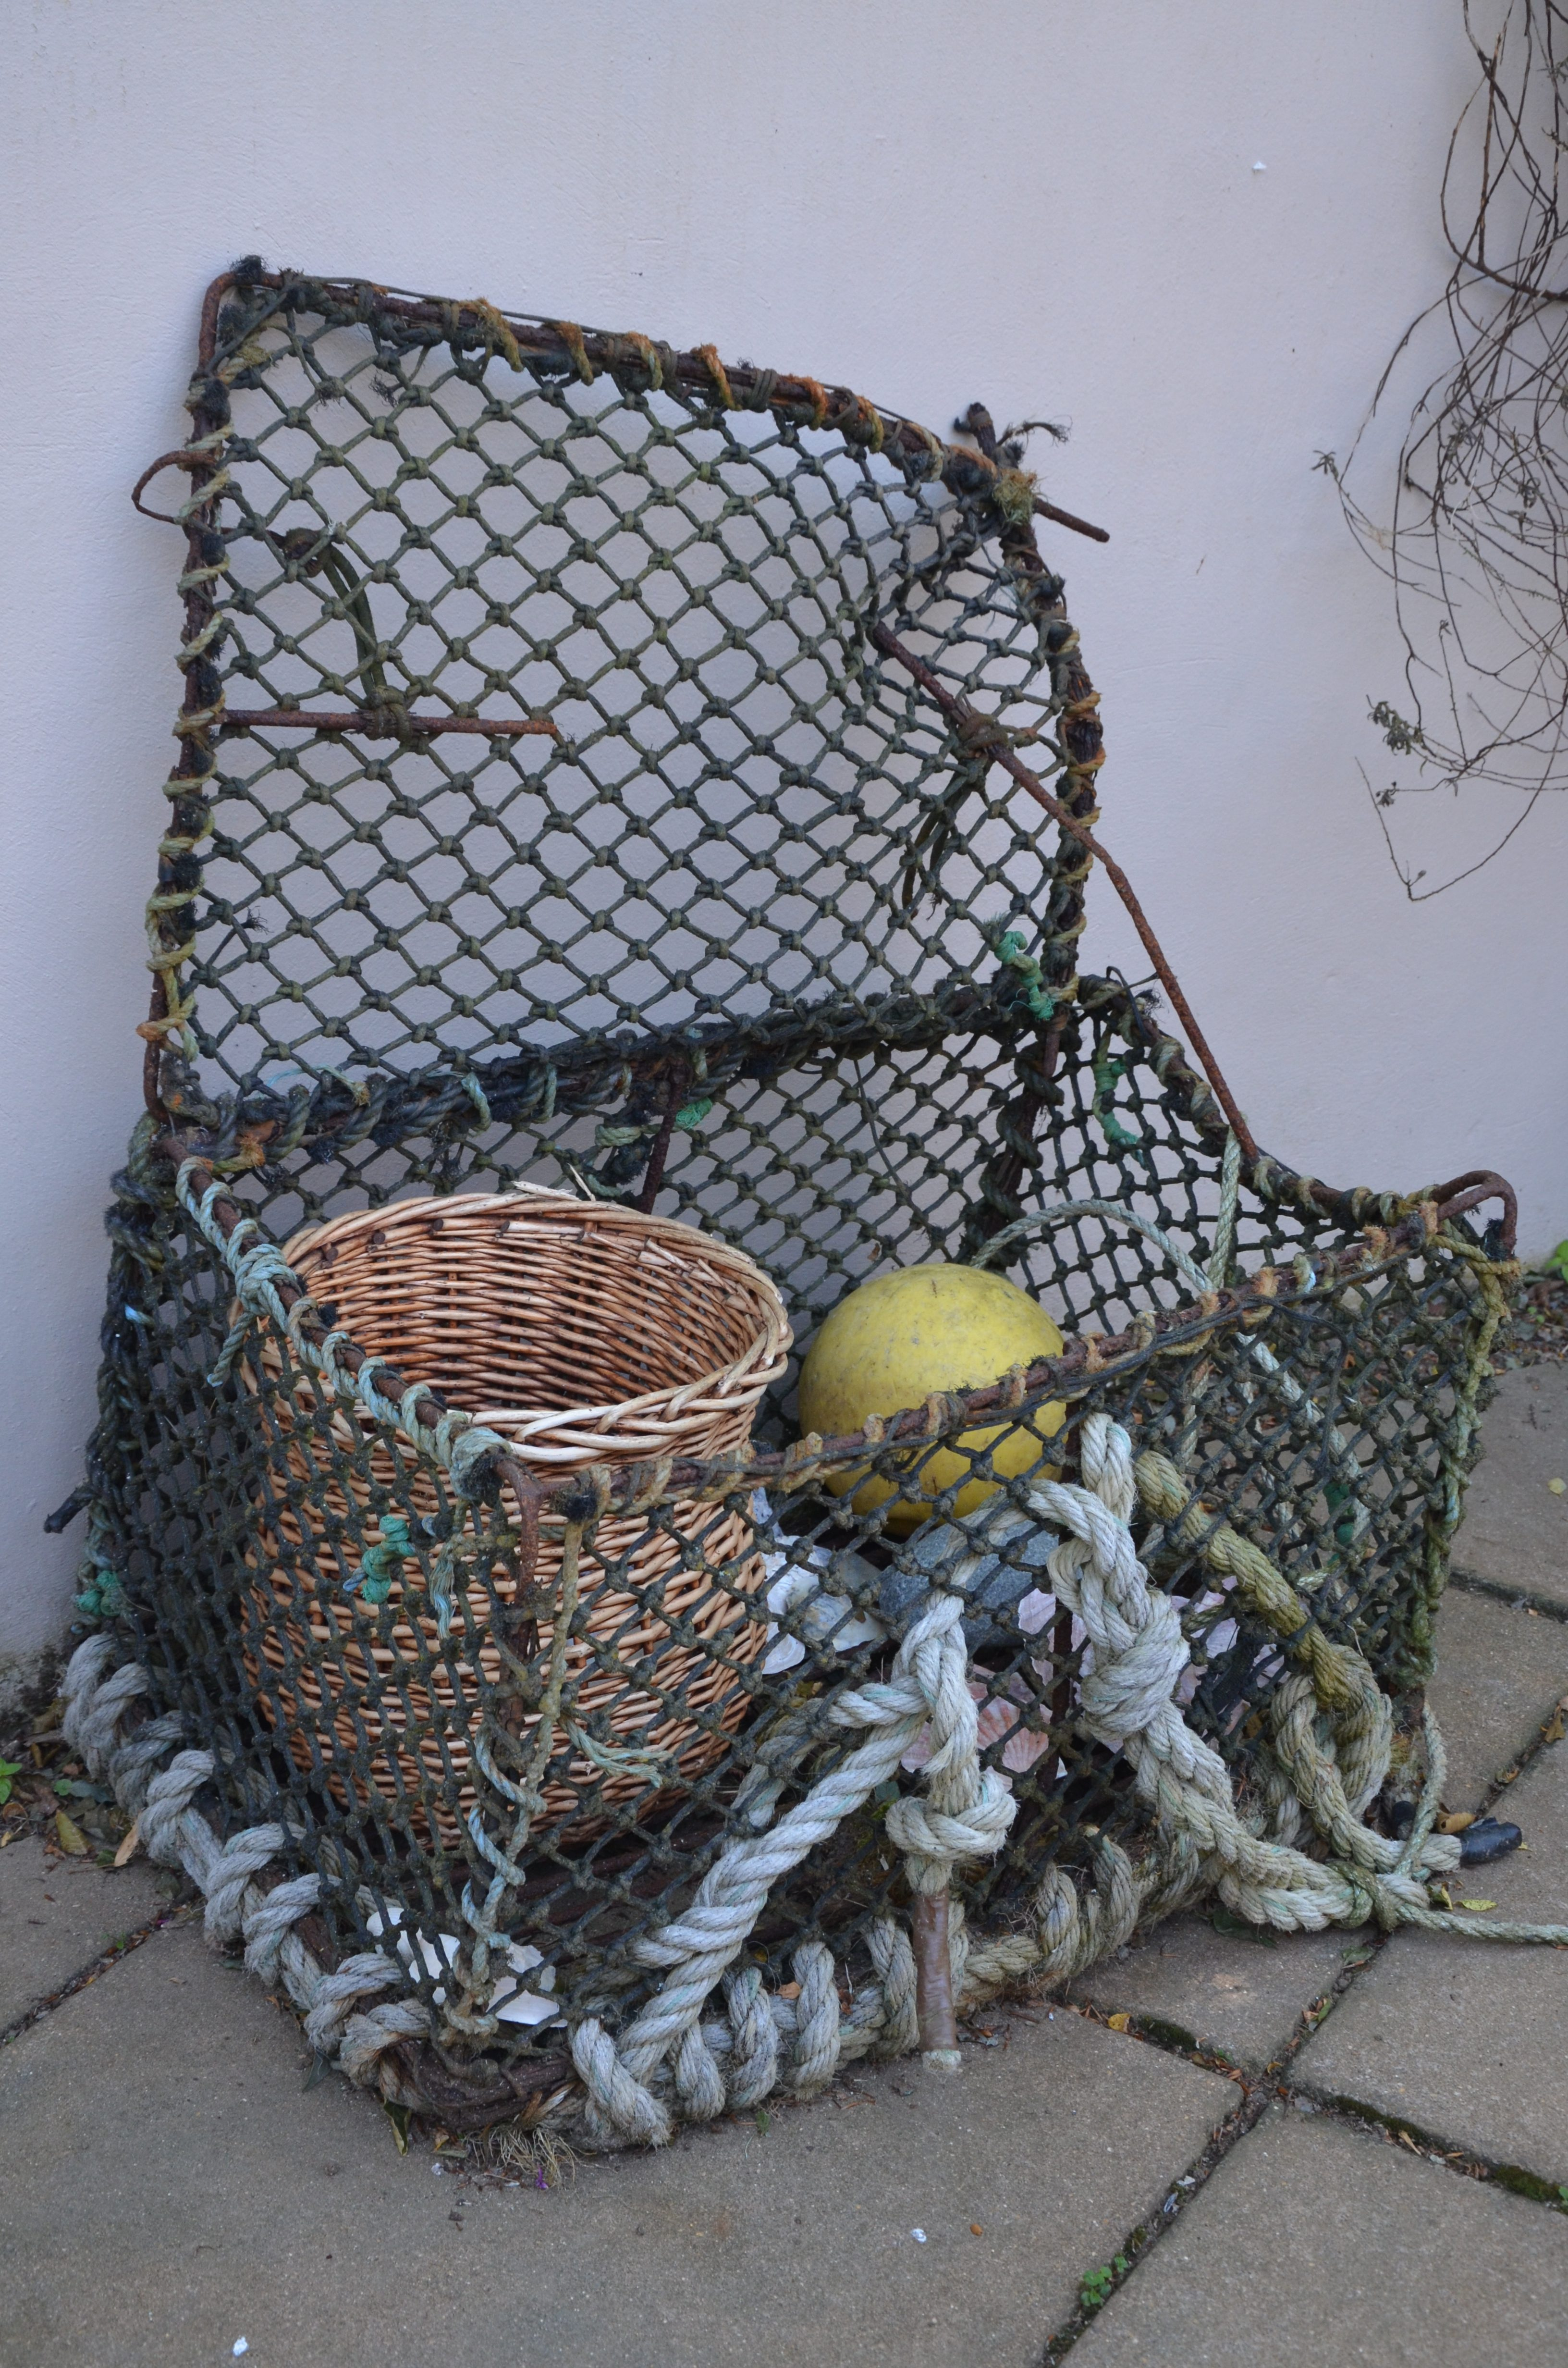 Yr Hafan access to guest rooms through pretty courtyard garden and patio area complete with old Lobster Pot